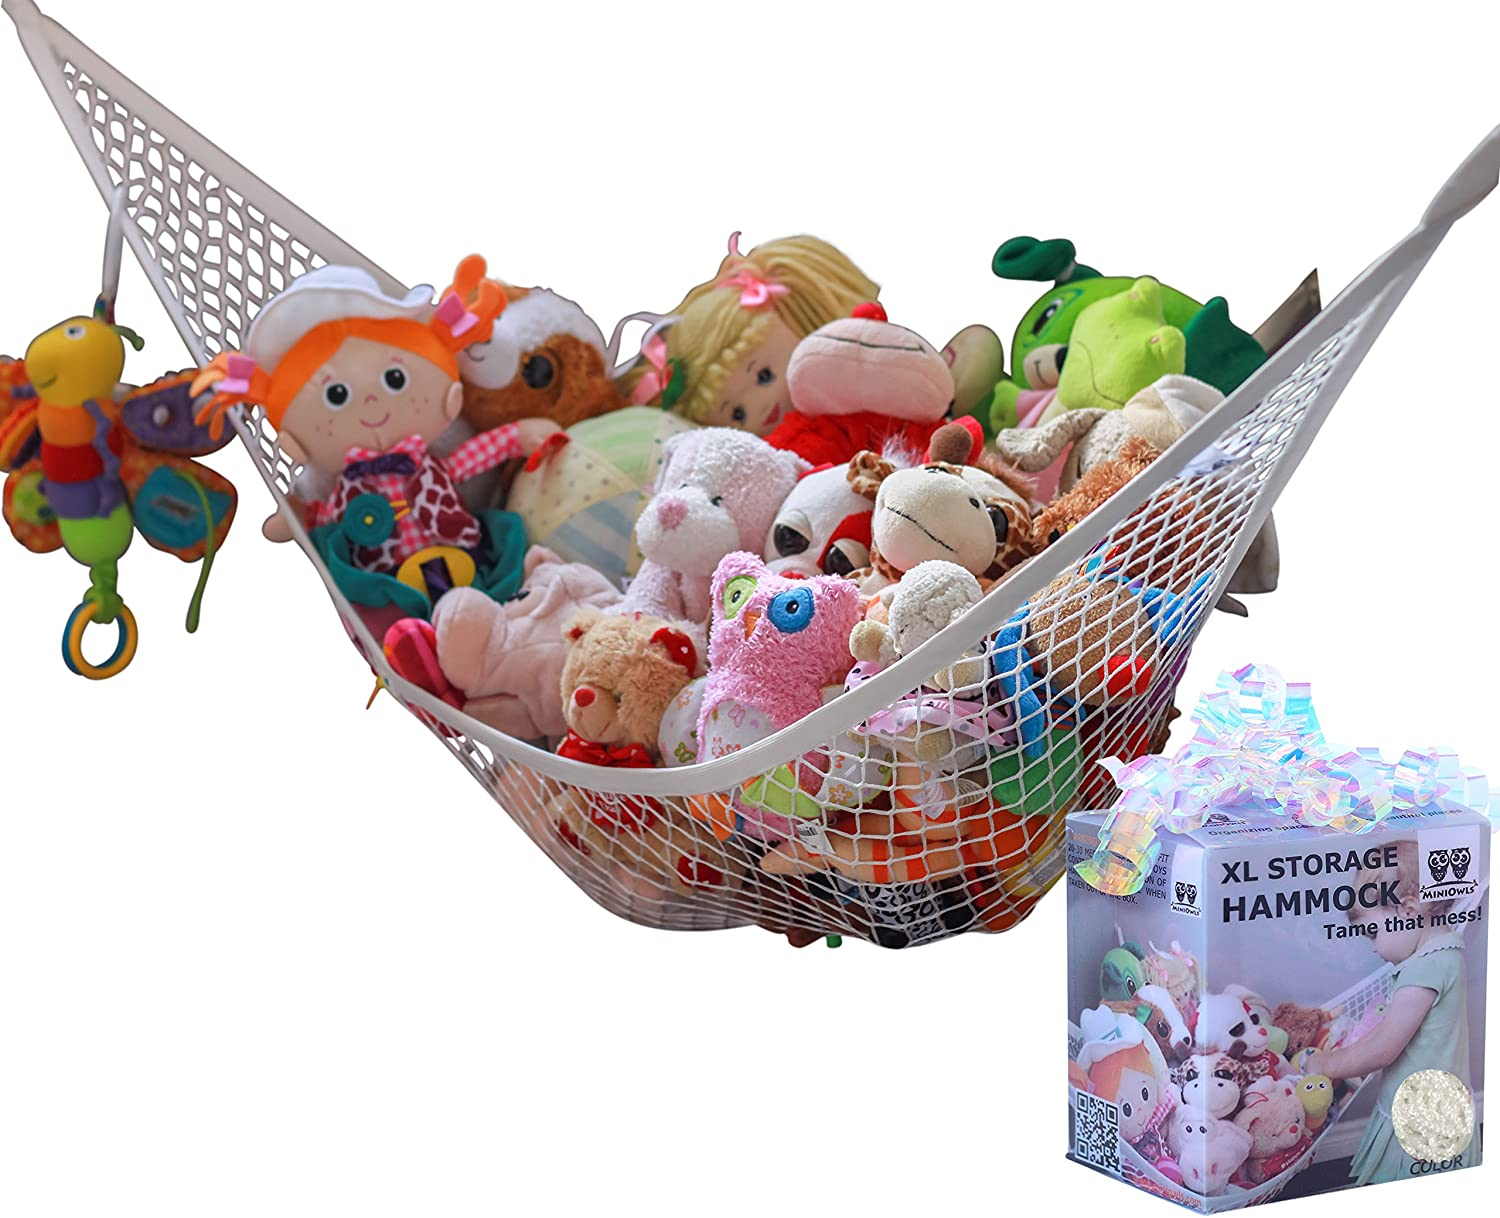 MiniOwls Plush Toy Hammock Organizer (White, XL)